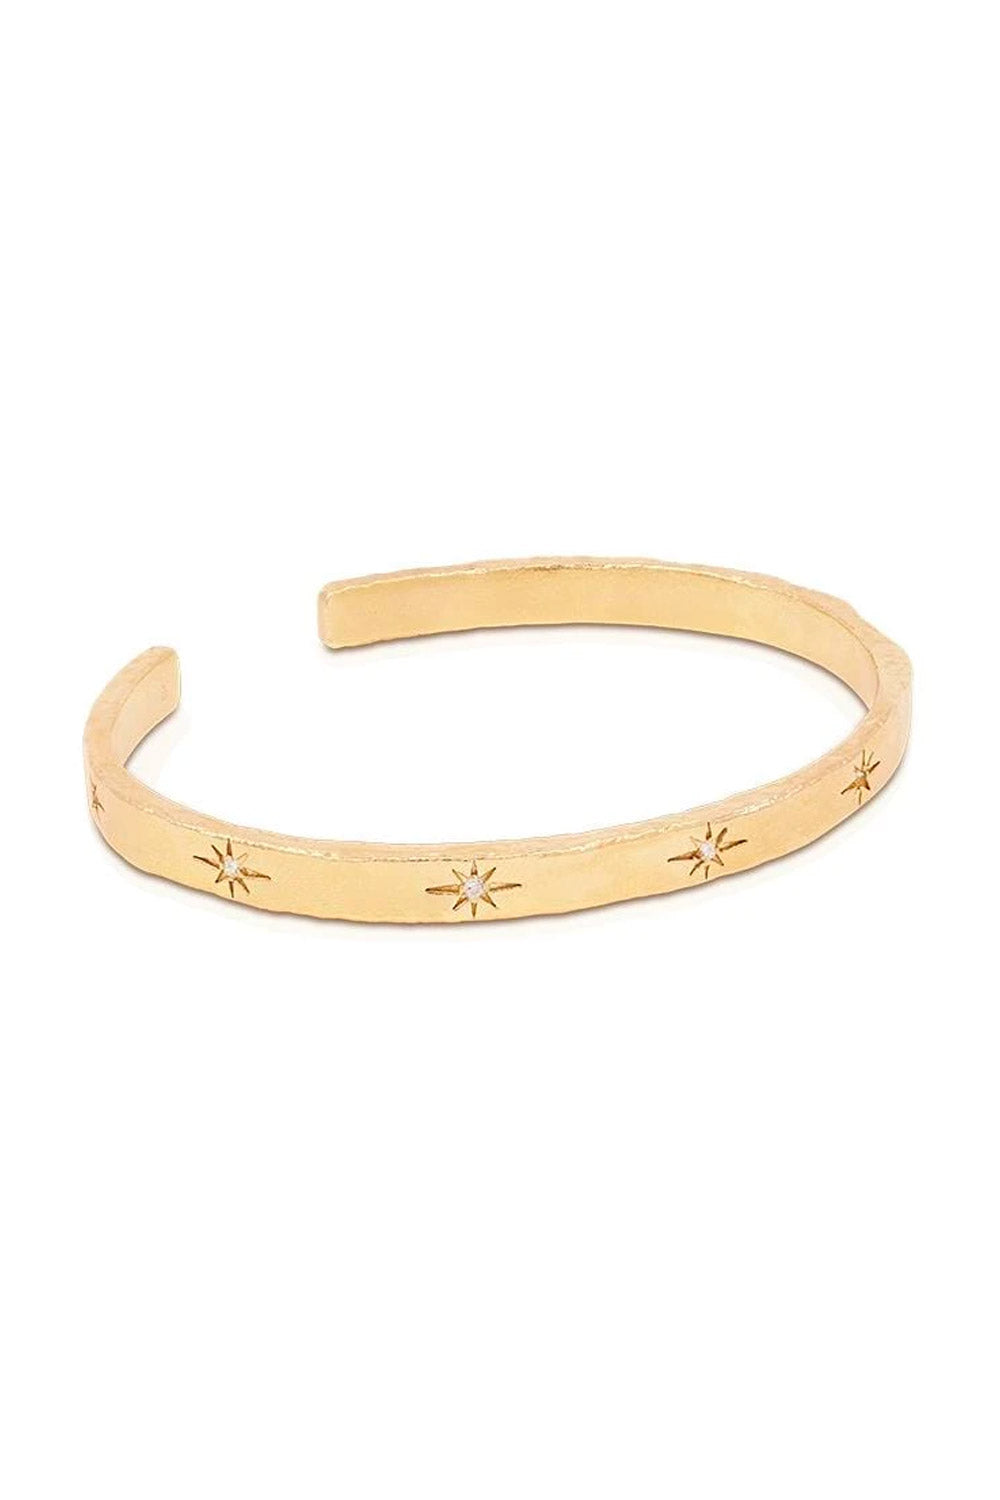 By Charlotte ~ Stardust Cuff in Gold